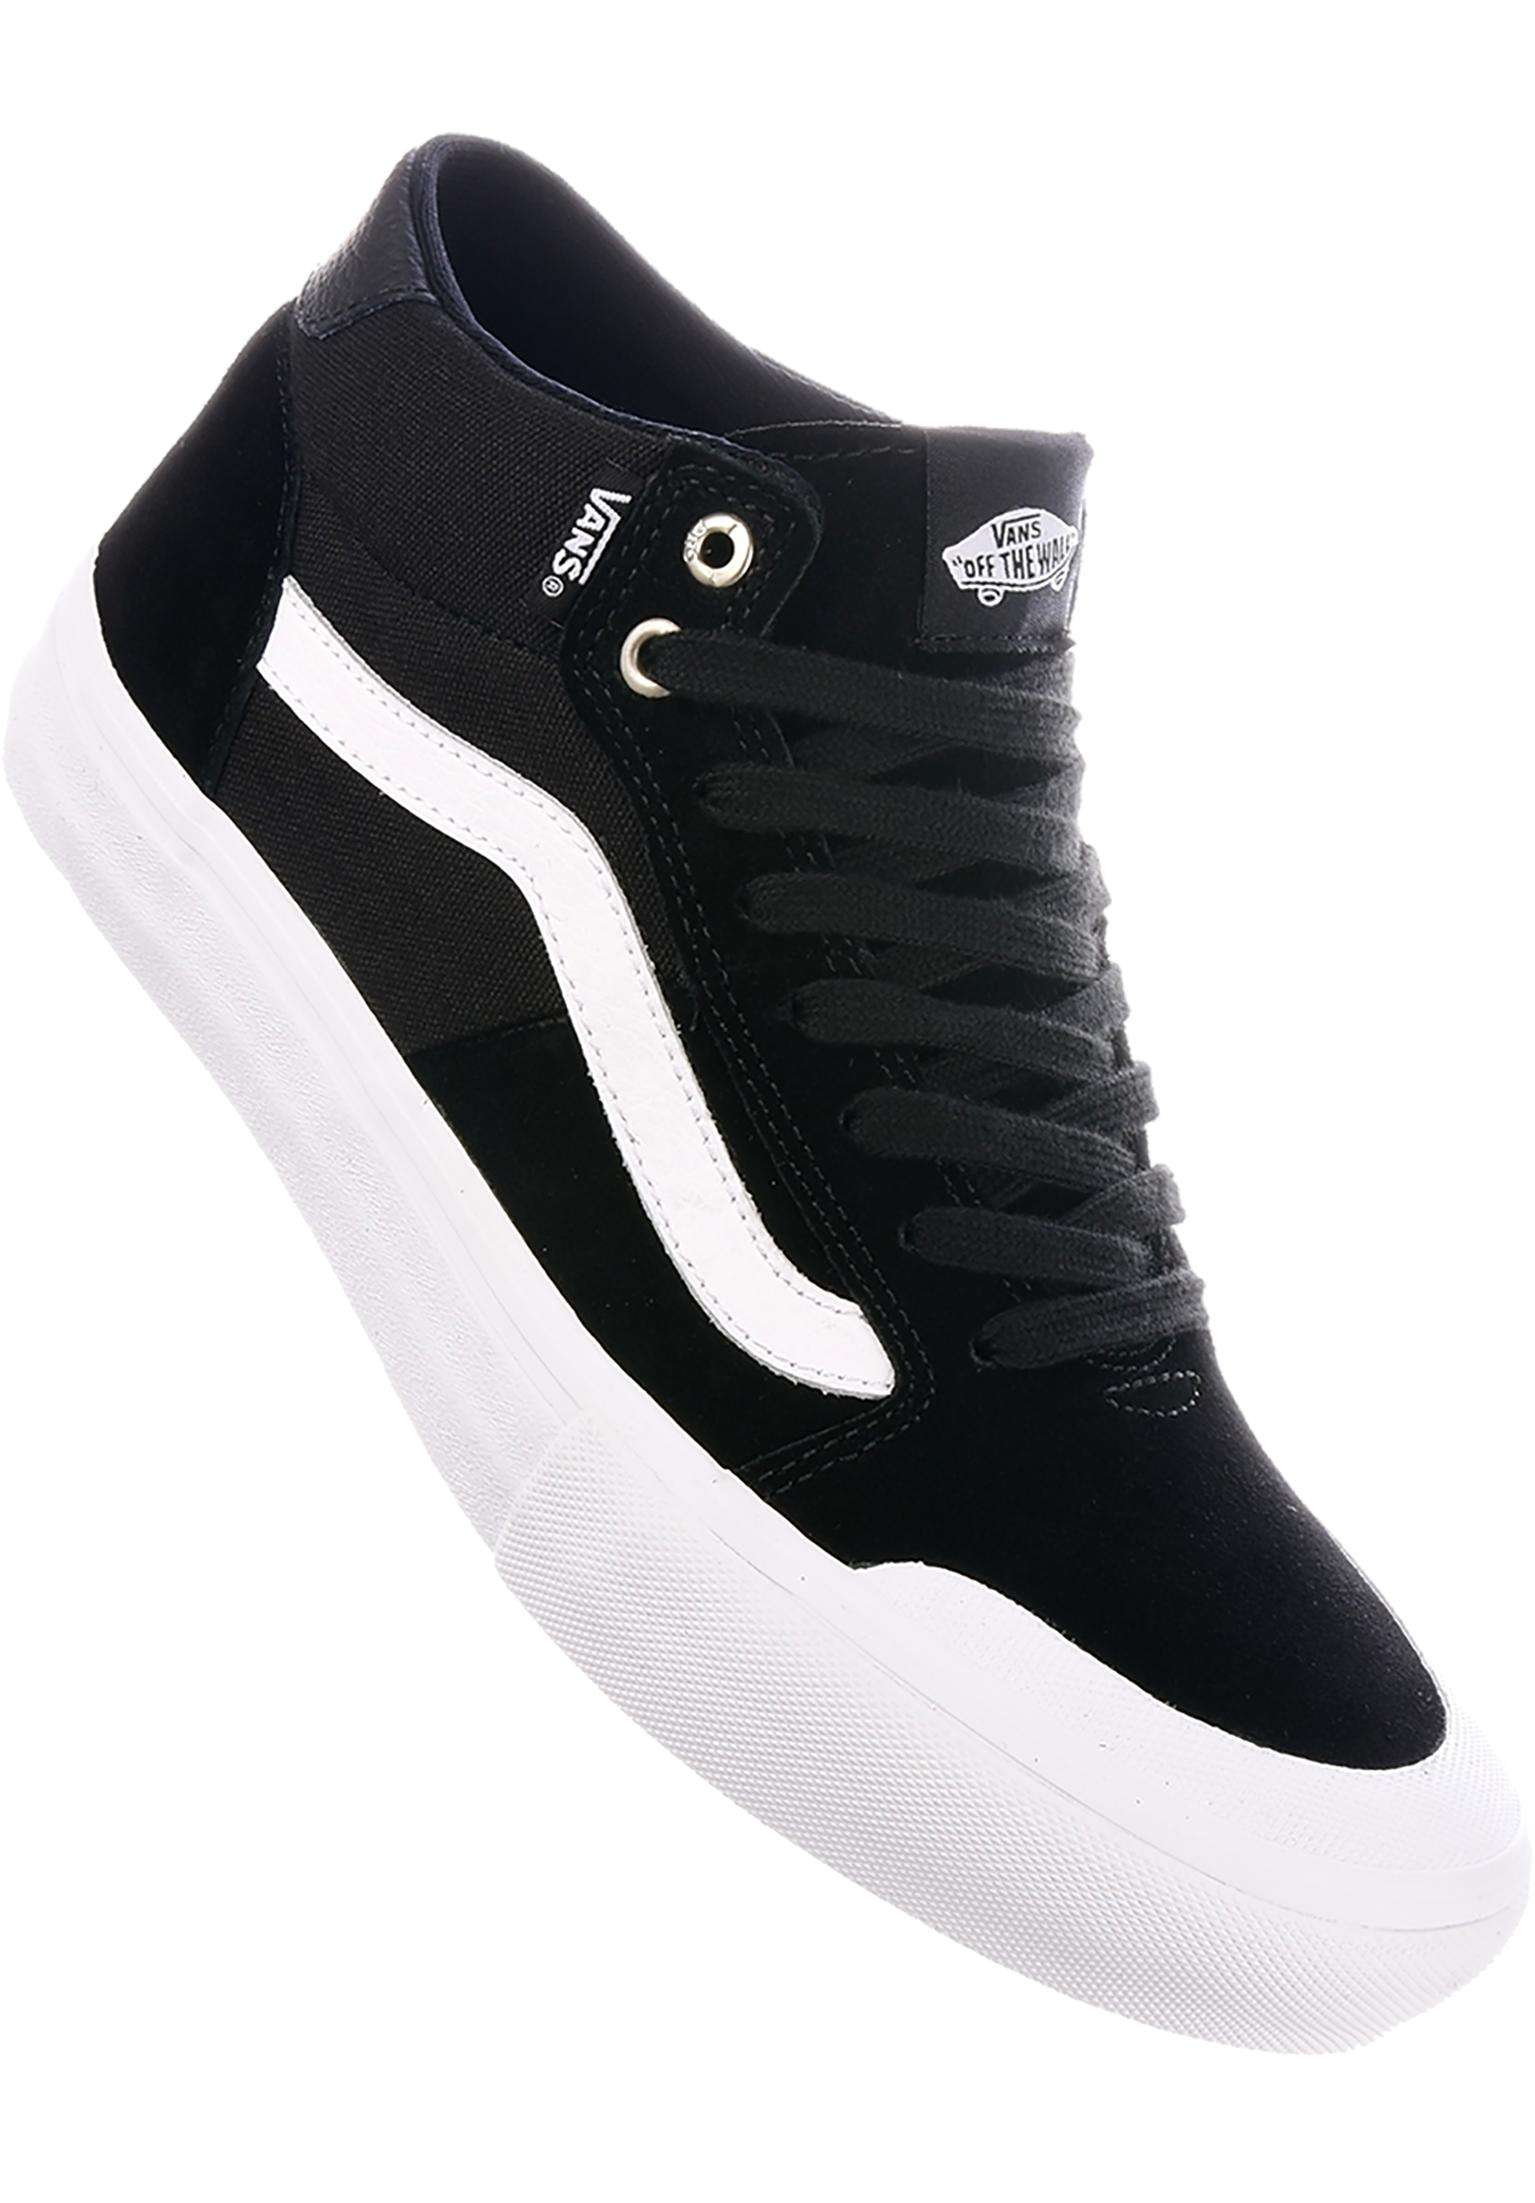 a1f8eb7f8f5520 Style 112 Mid Pro Vans All Shoes in black-white for Men